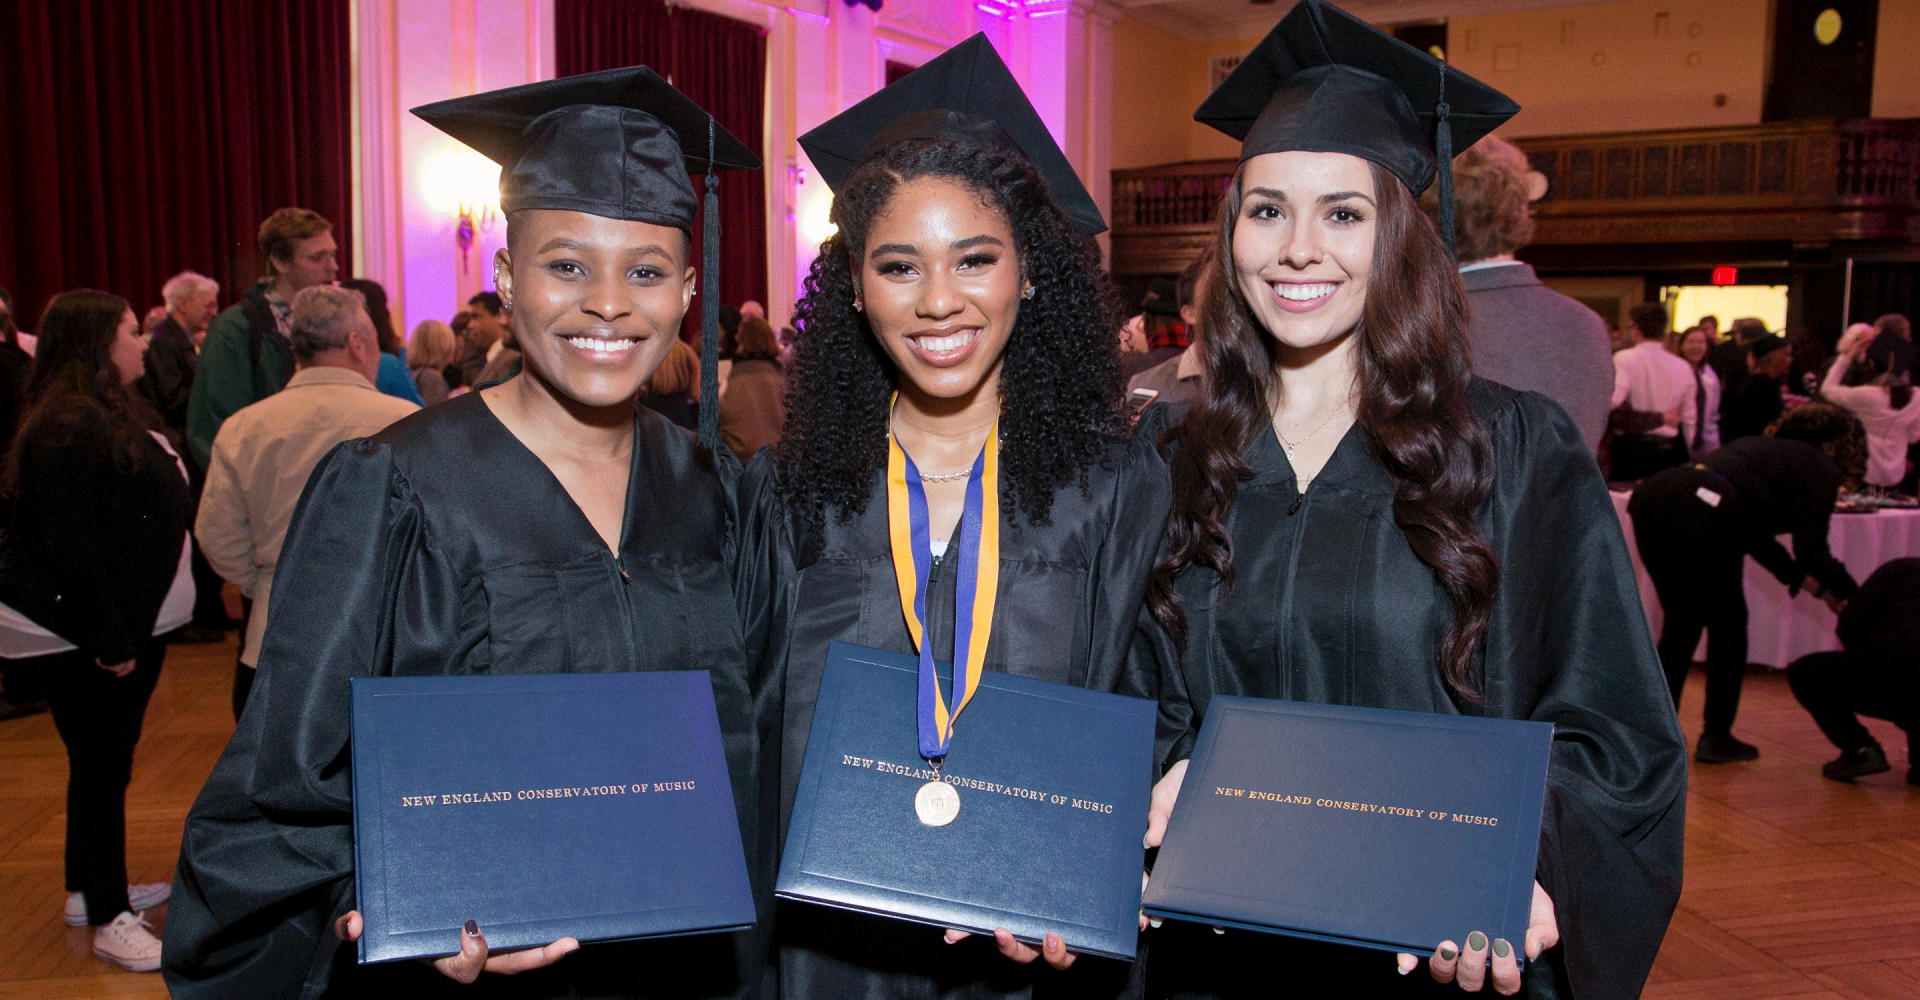 Three graduates smile and hold up their diplomas, wearing caps and gowns